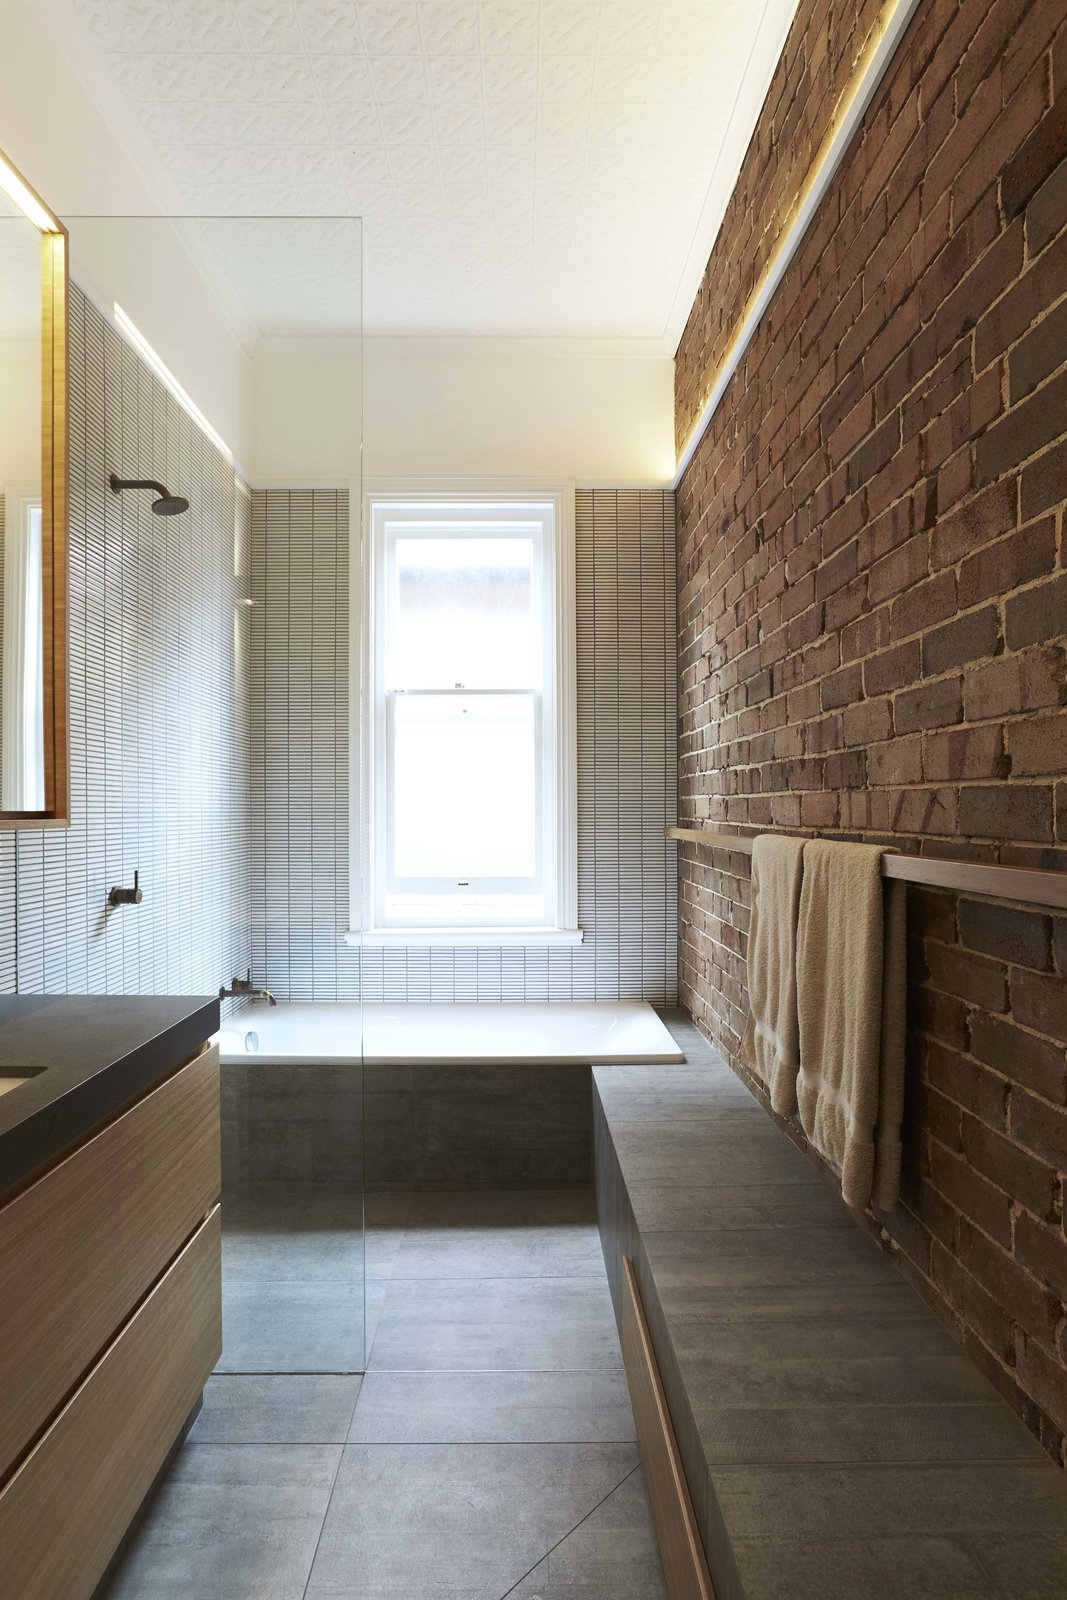 Suntrap House bathroom with exposed brick